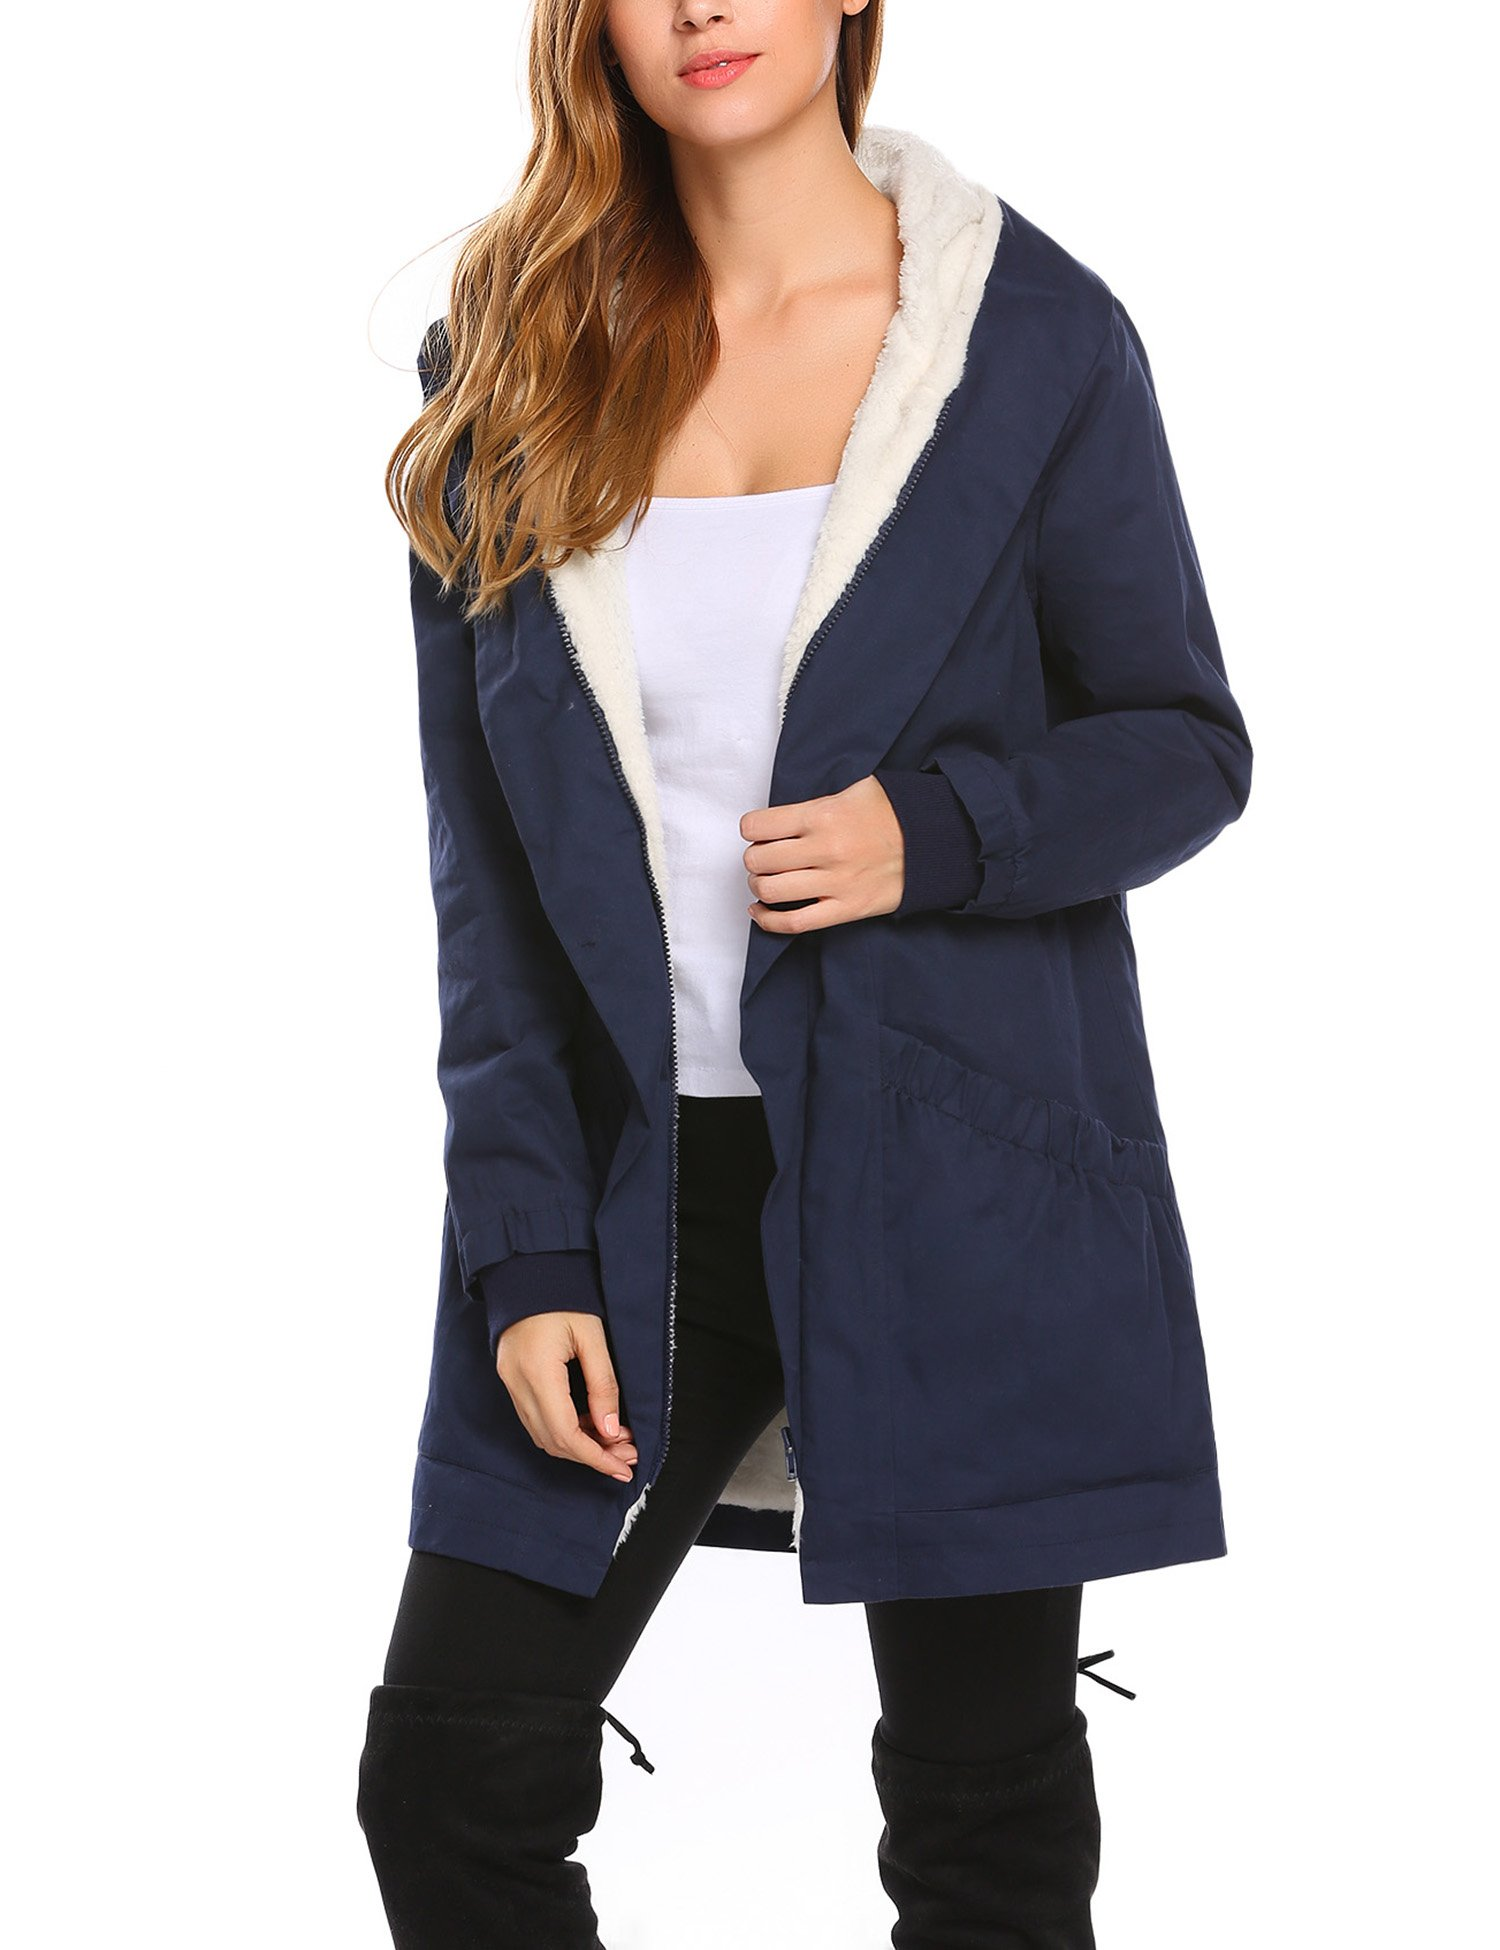 Misakia Womens Winter Fashion Outdoor Warm Wool Blended Classic Pea Coat Jacket (Navy Blue M) by Misakia